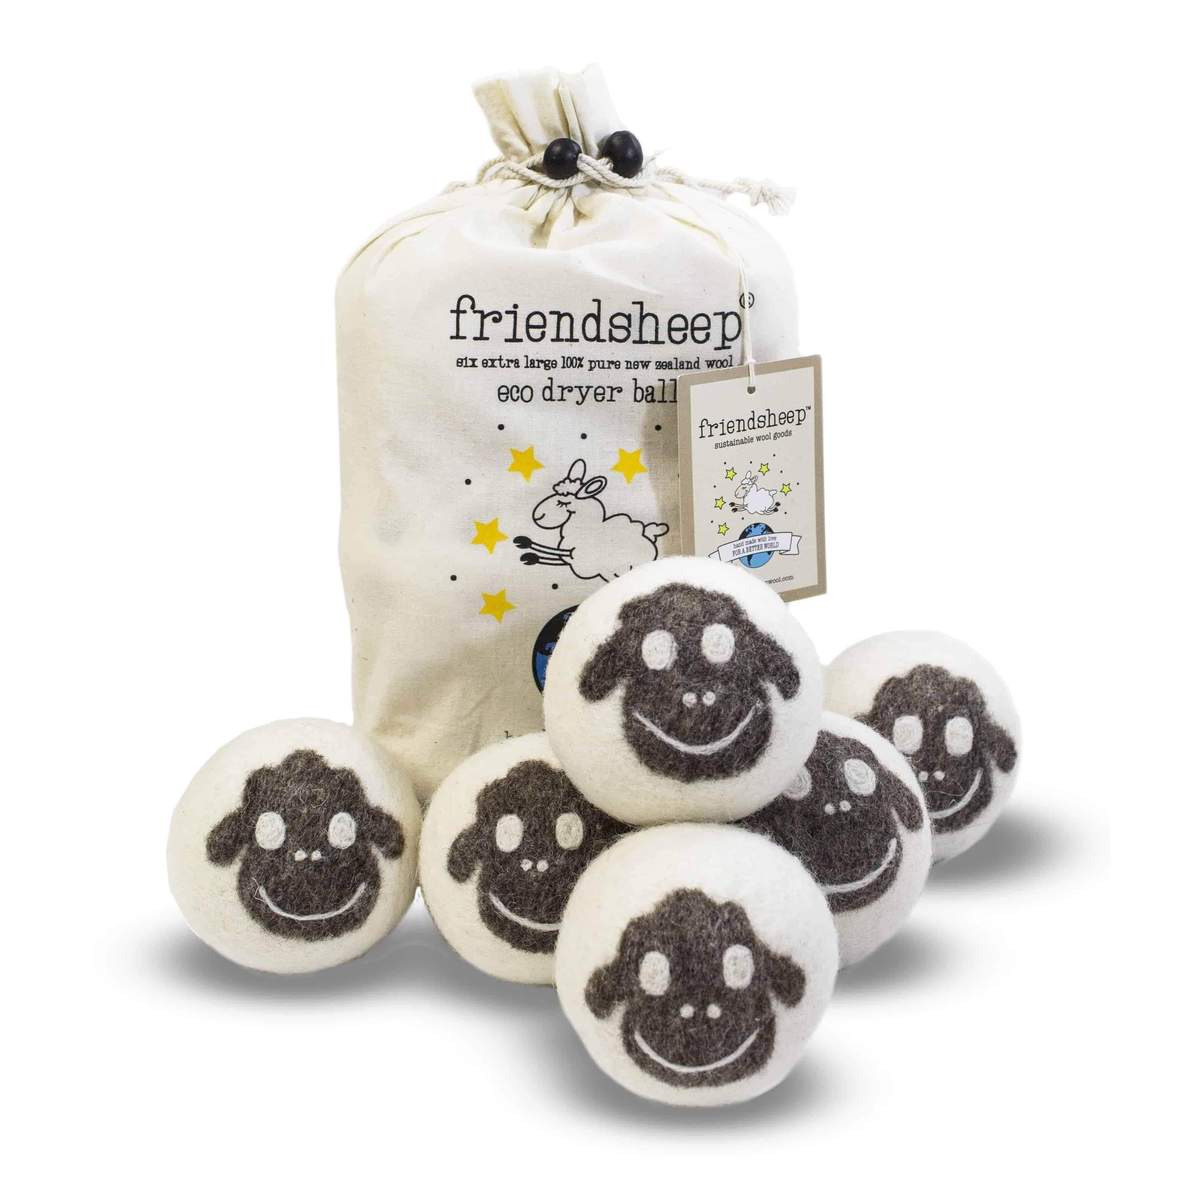 Friendsheep Eco Dryer Balls Pack of 6 - Flock of Friends